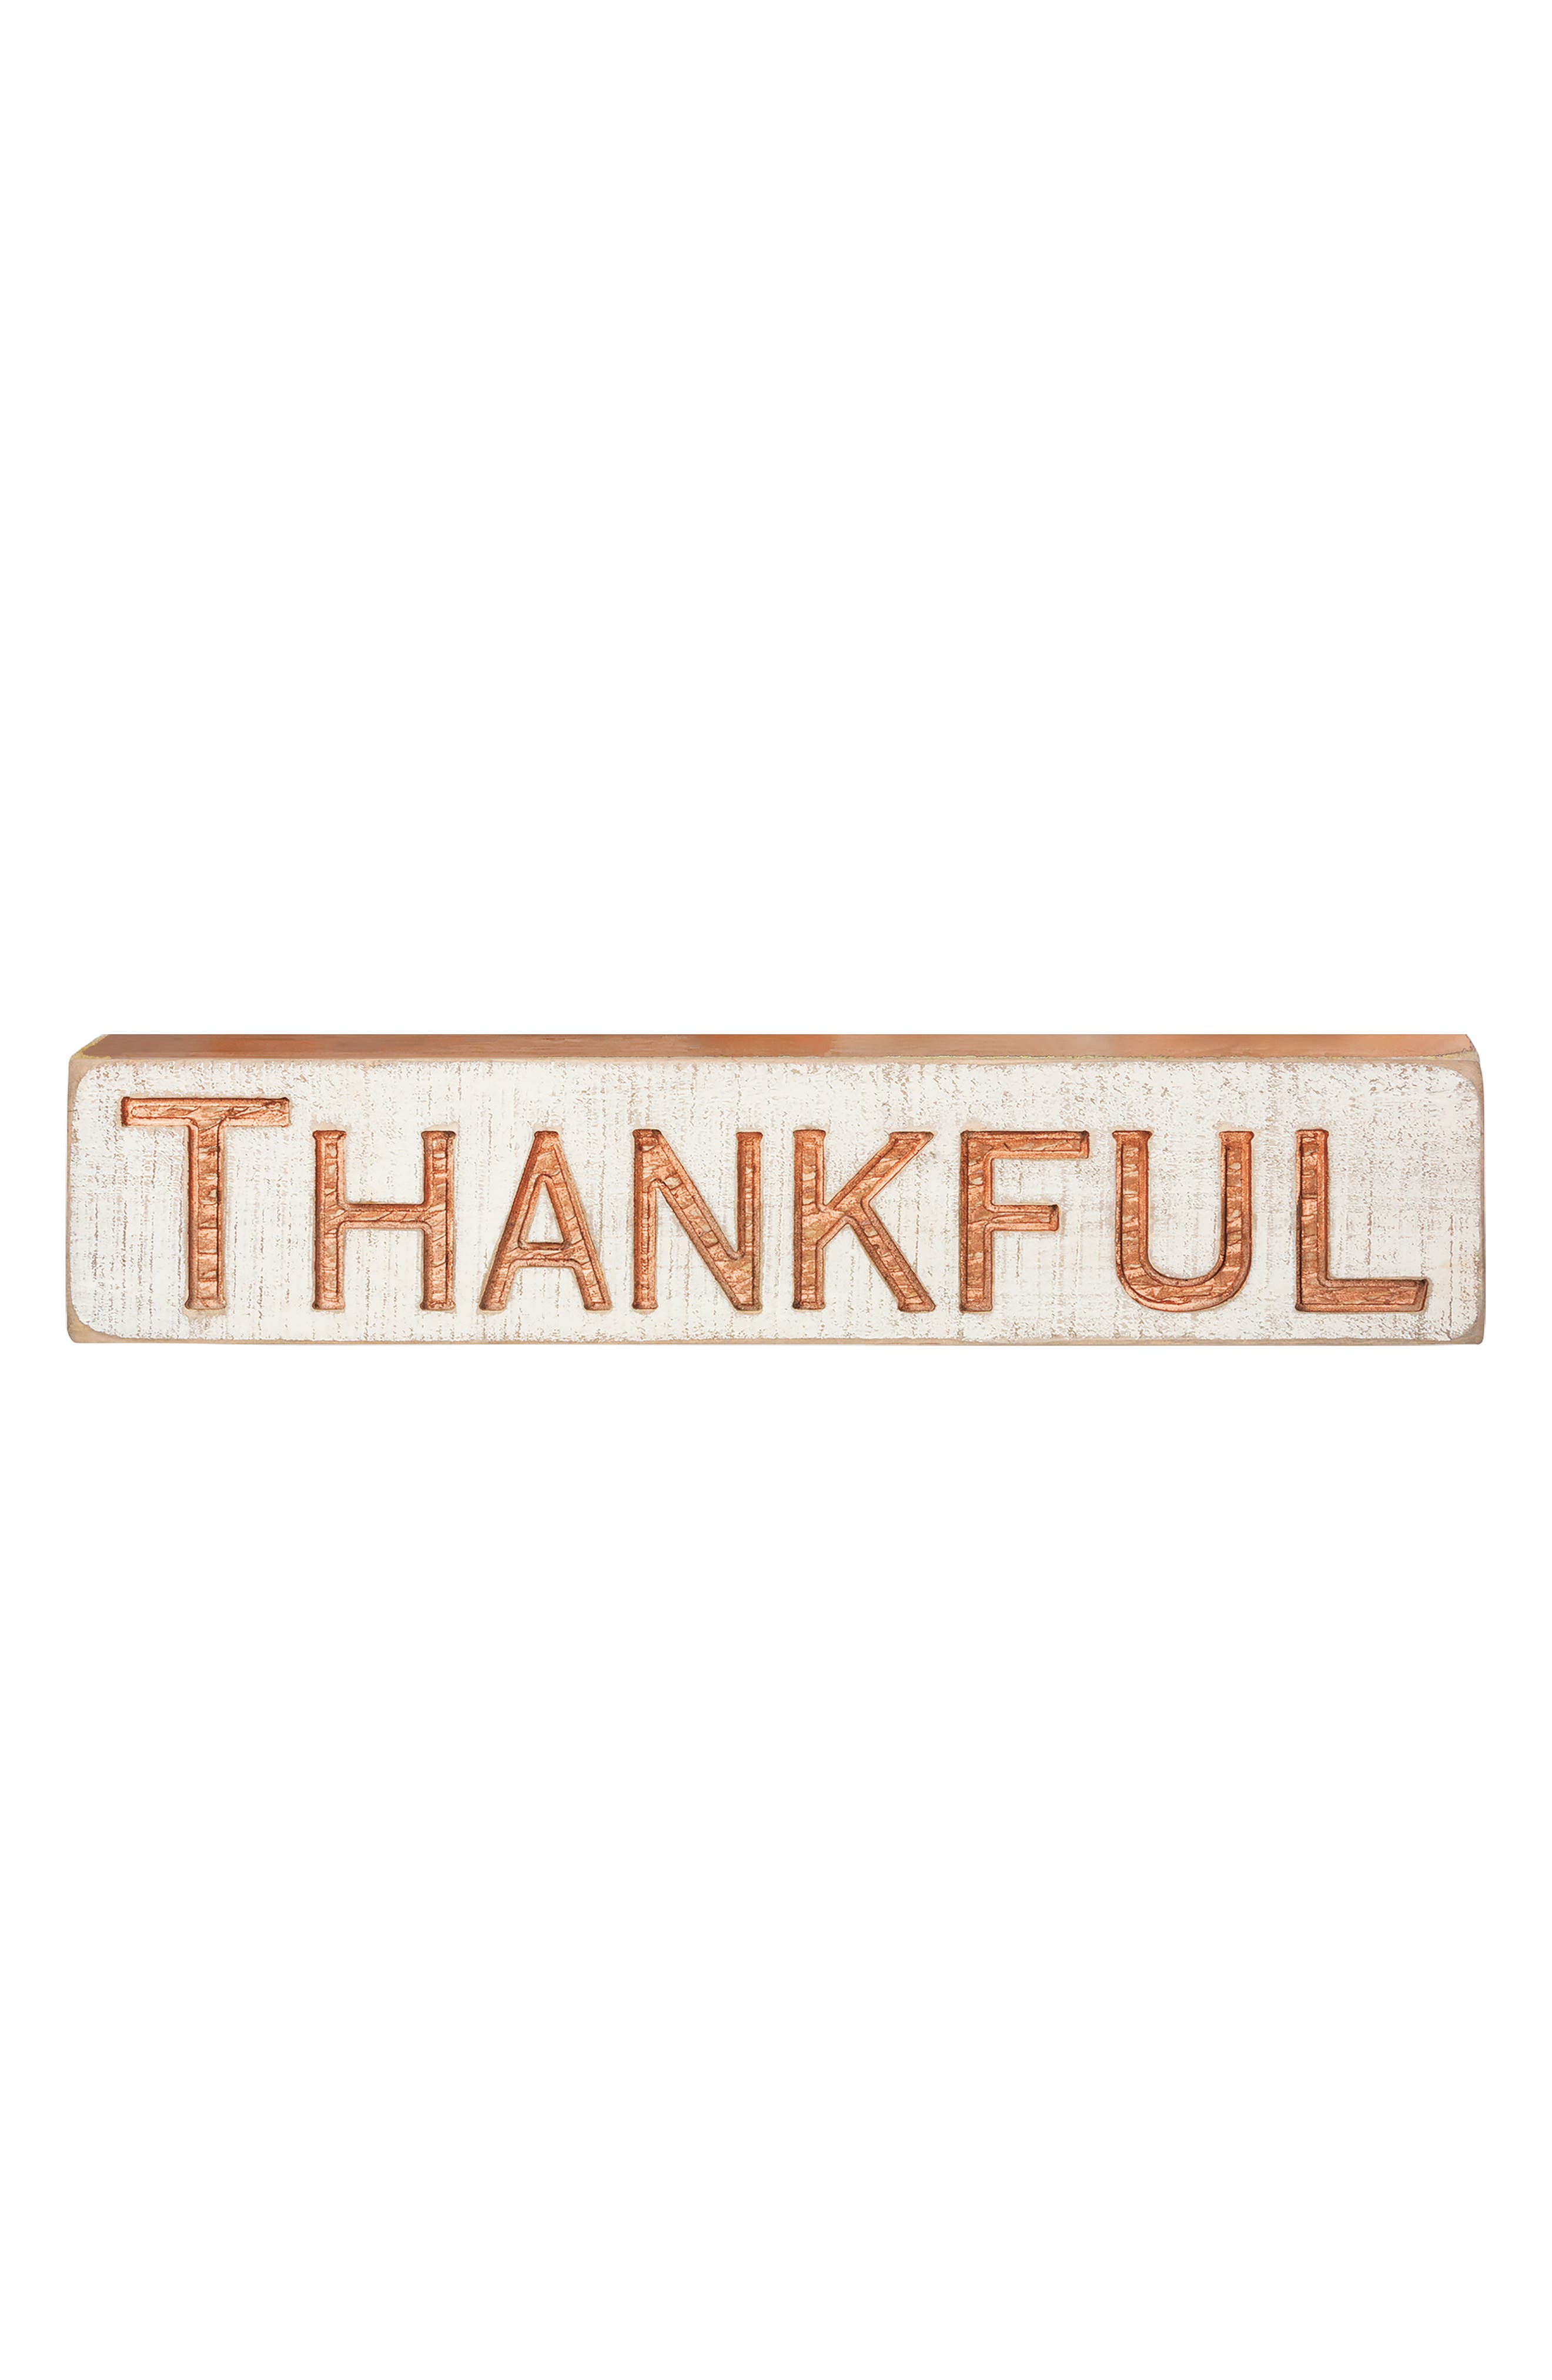 Thankful Carved Wood Sign,                             Main thumbnail 1, color,                             Copper